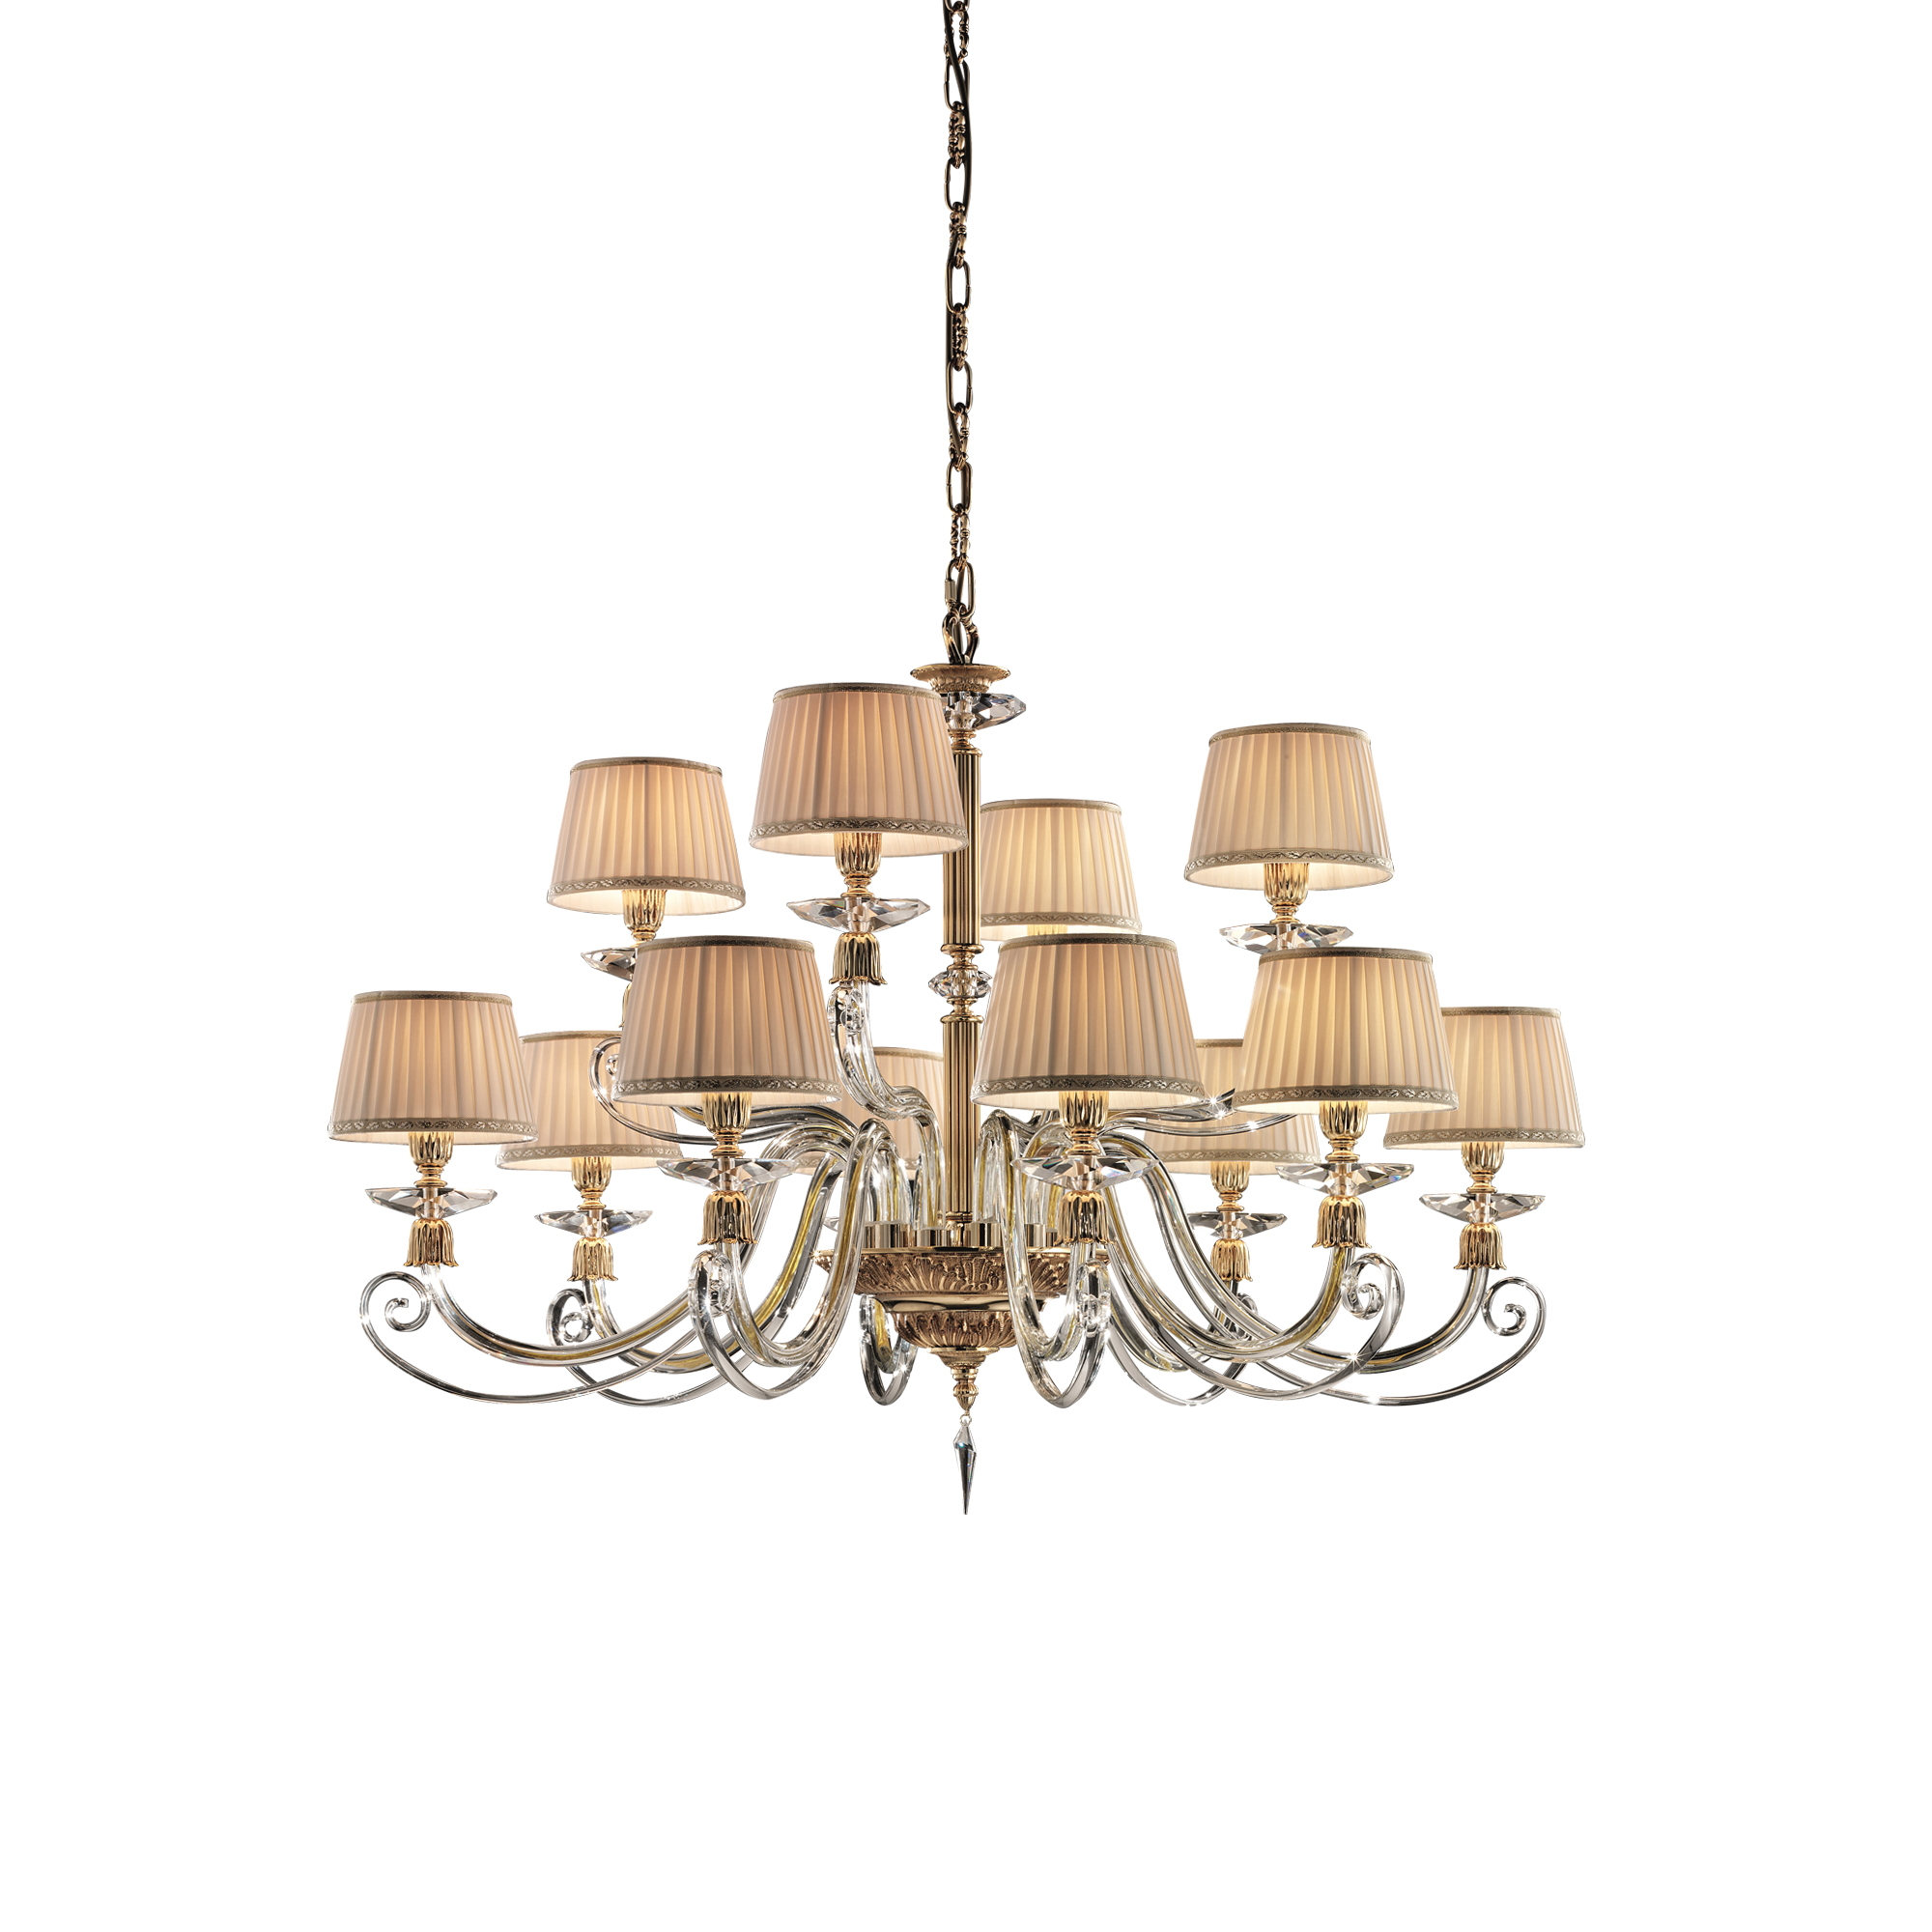 milk f chandelier deco for lighting id lights img glass chandeliers at schoolhouse master sale pendant and copper furniture art